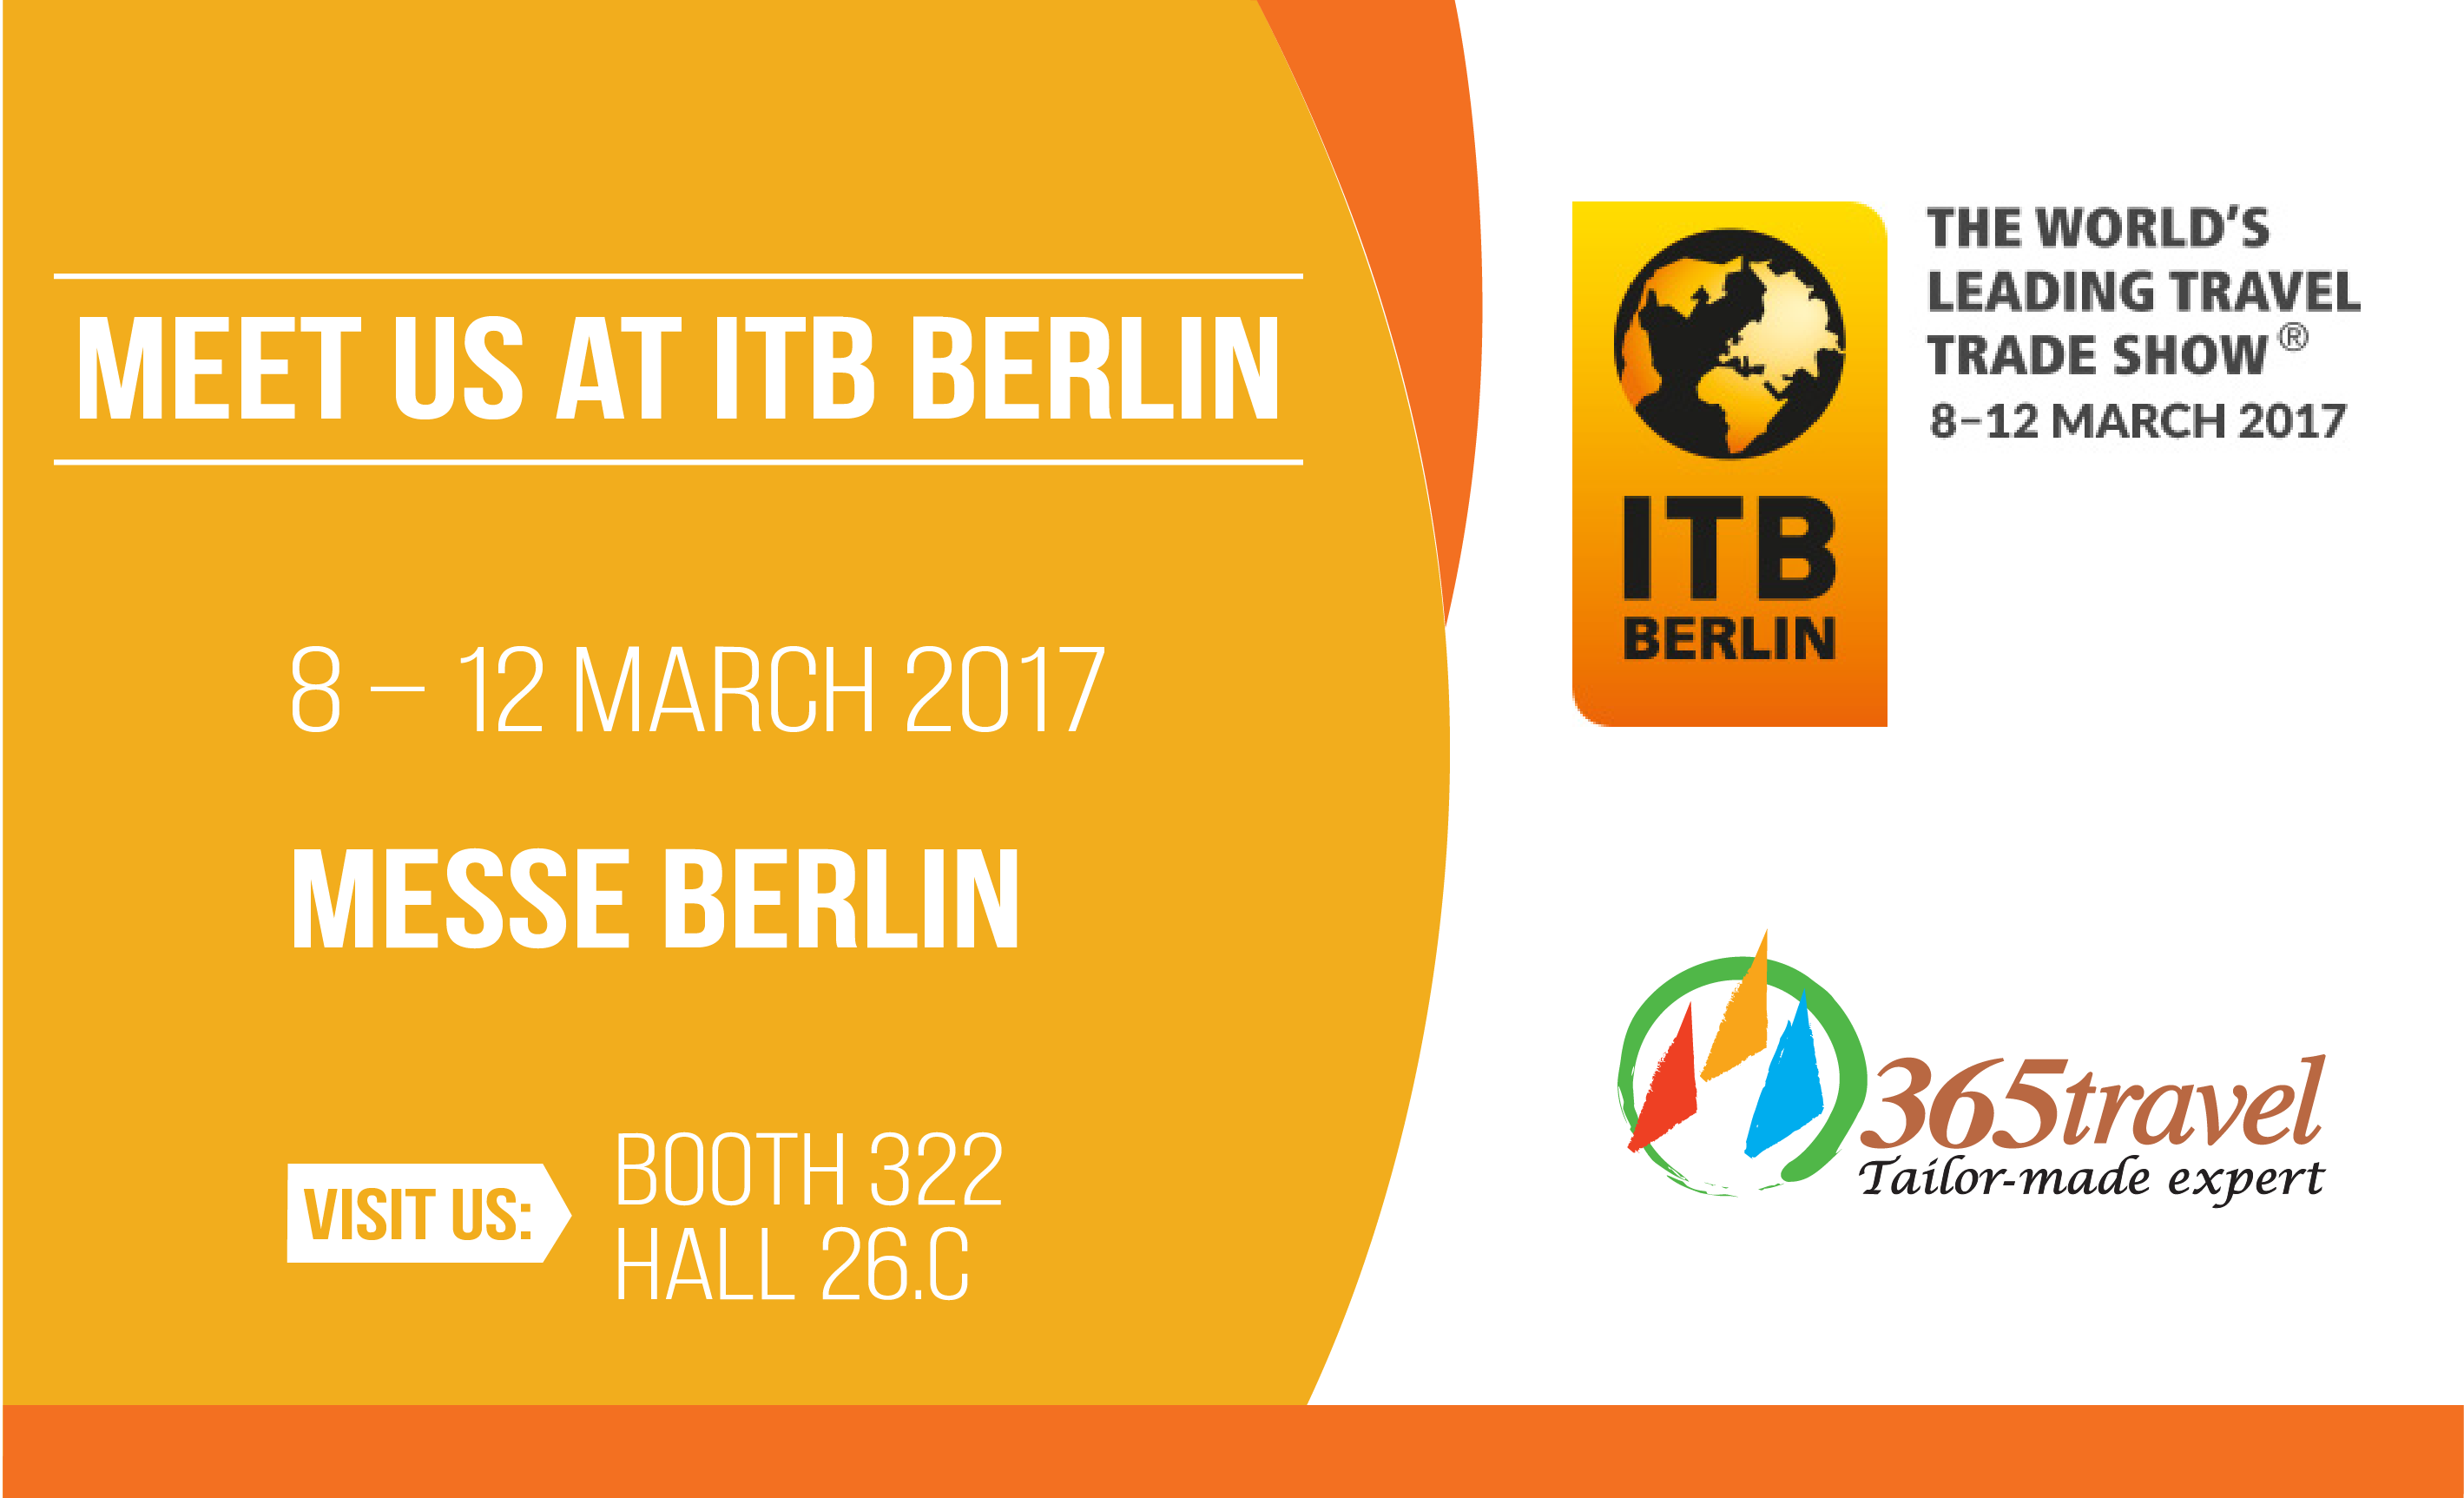 Come and Visit Us at ITB Berlin 2017